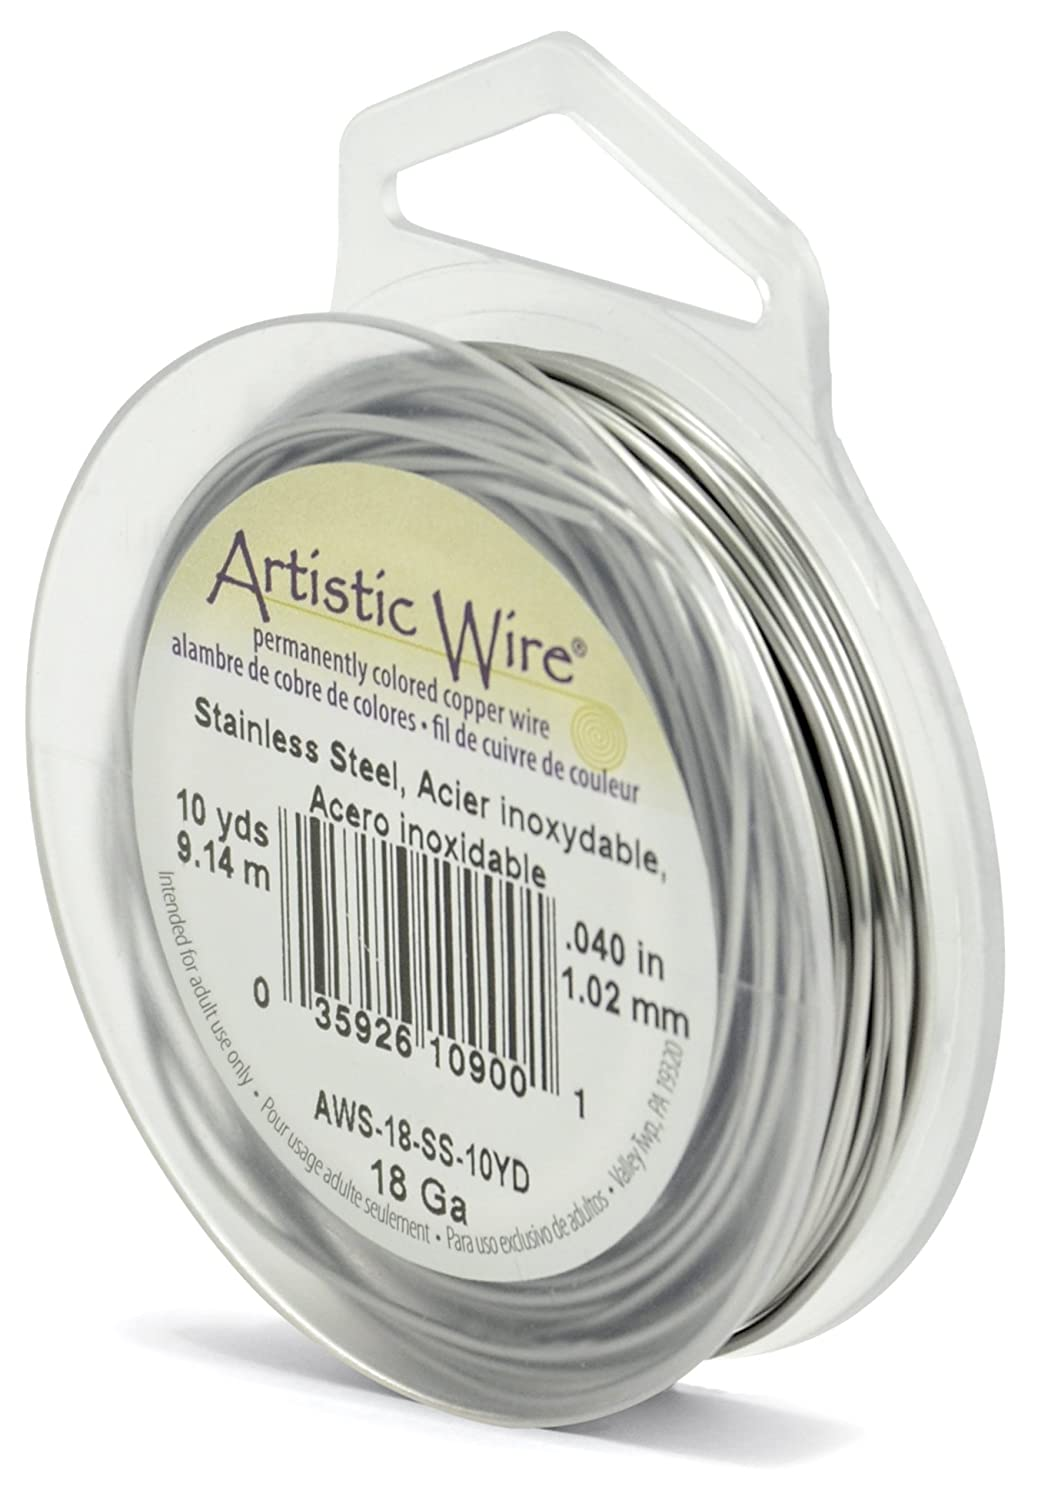 Amazon.com: Beadalon AWS-18-SS-10YD 18 Gauge Artistic Wire ...